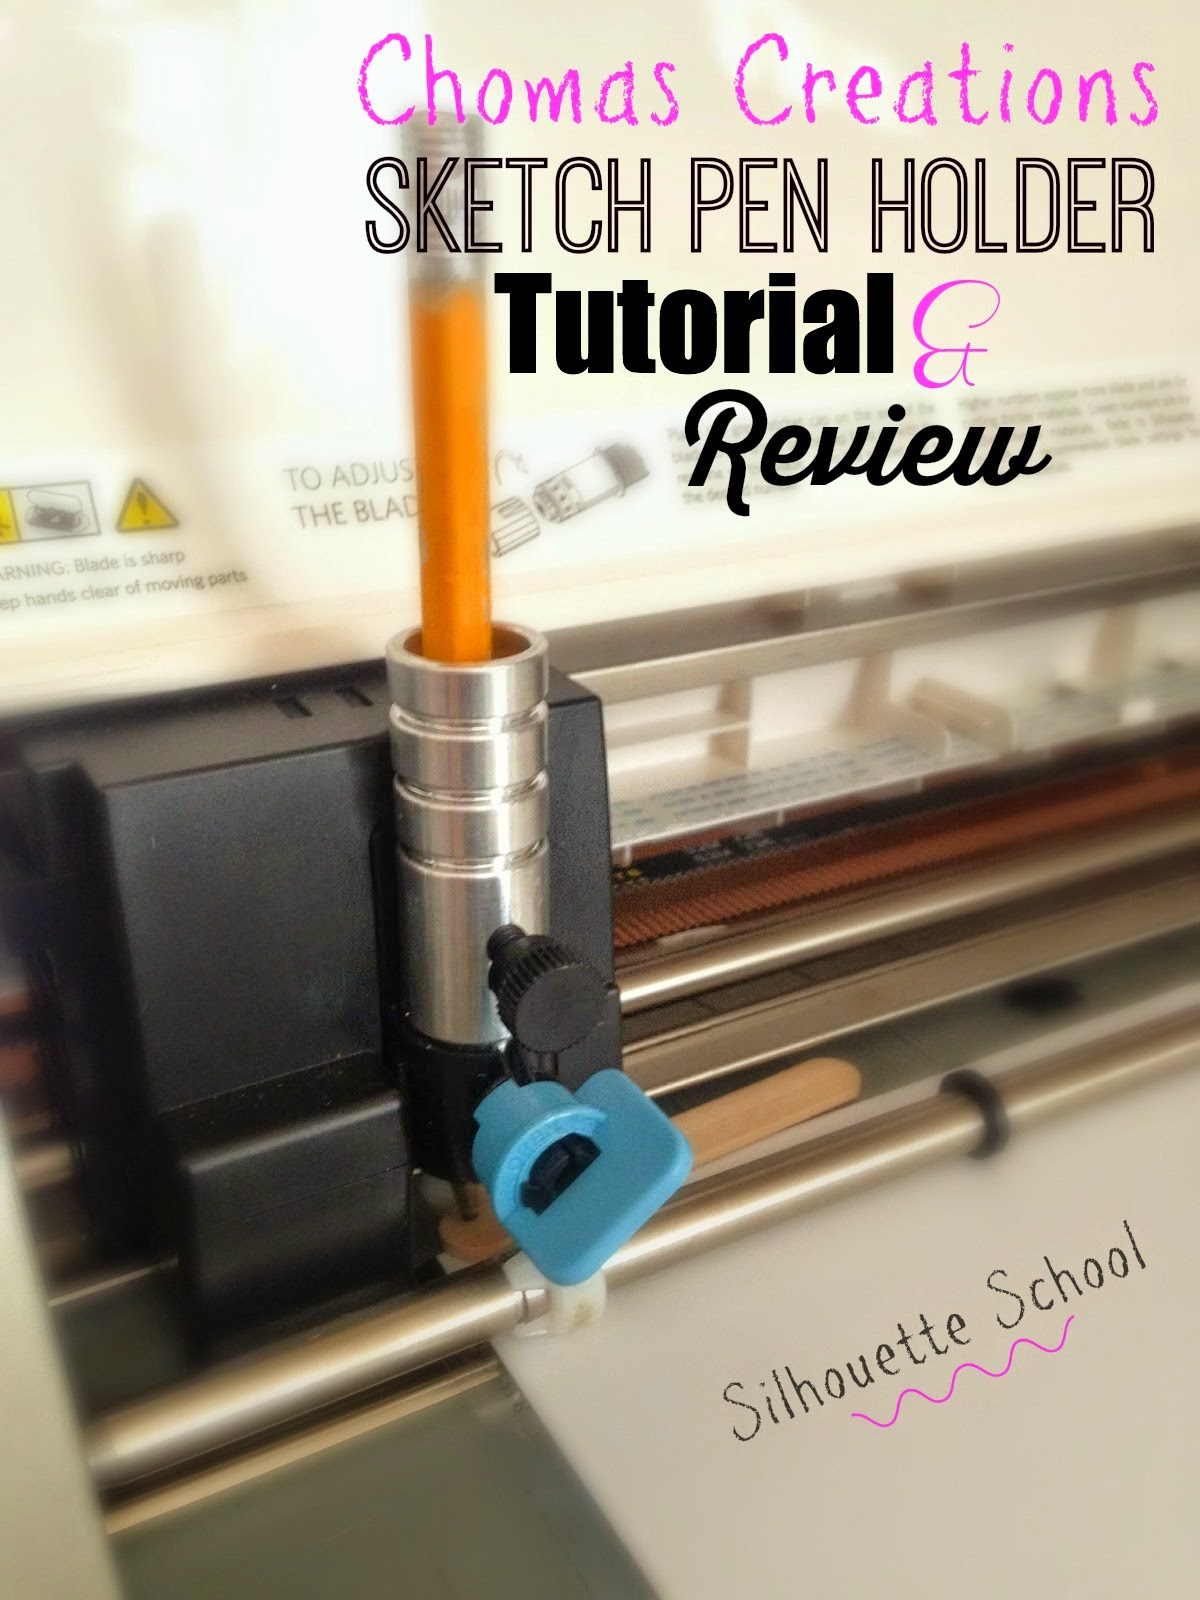 Amy Chomas, sketch pen holder, review, Silhouette tutorial